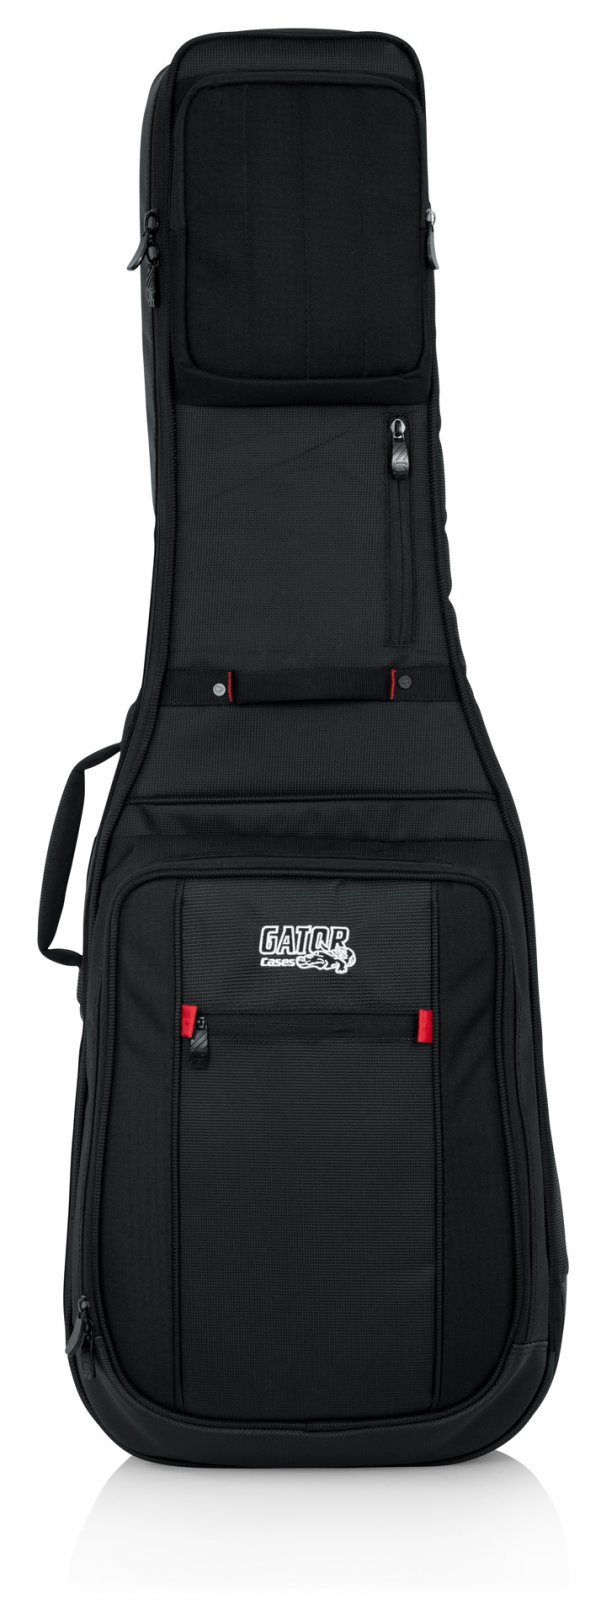 GATOR G-PG PRO-GO GUITAR SERIES Electric Guitar Gig Bag